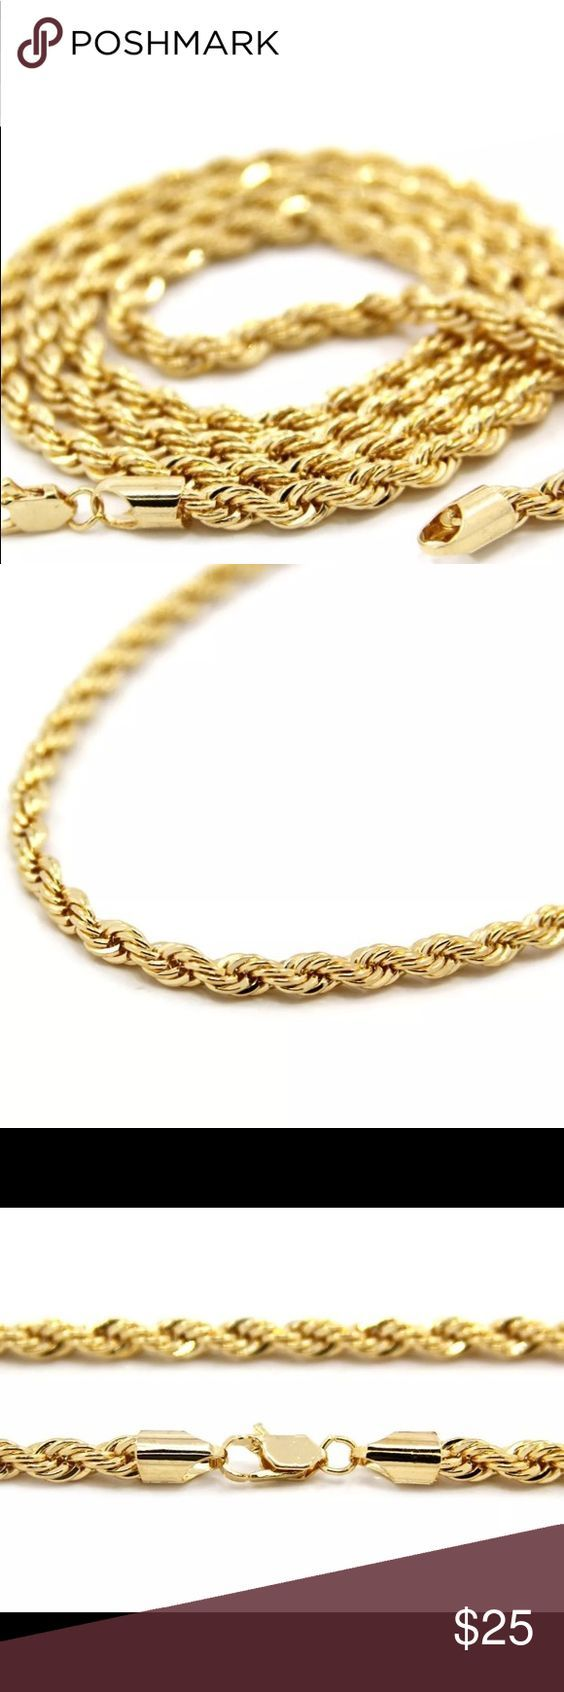 "Men's 14K Gold 4mm rope chain 24"" Gold chain 14K engraved on it, sterling silver dipped in gold Jewelry Necklaces"